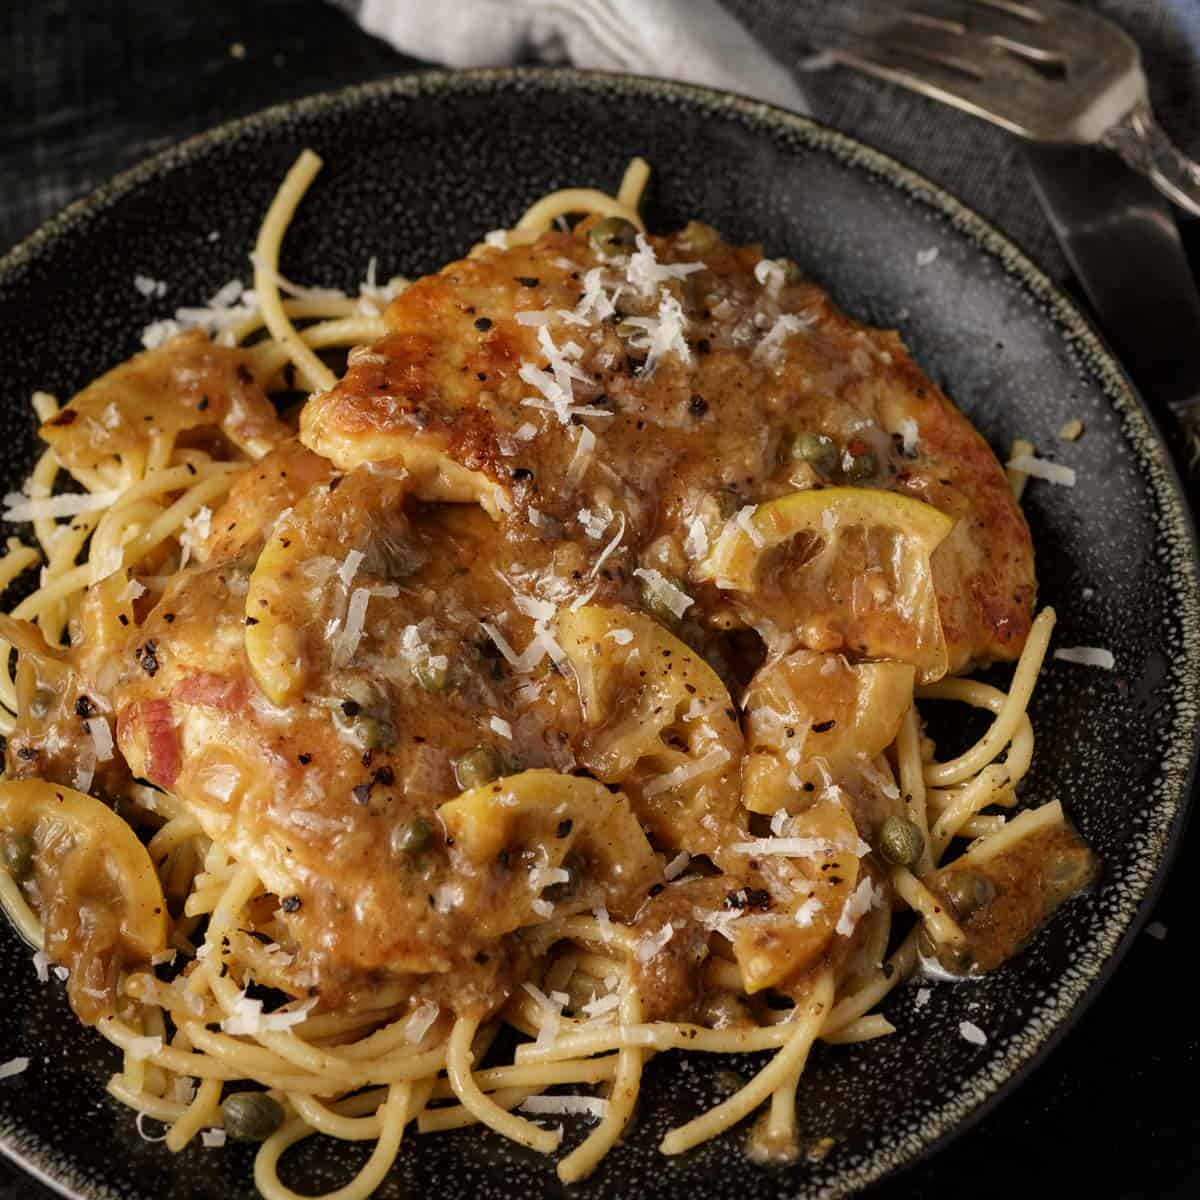 A plate of pasta with chicken piccata on top